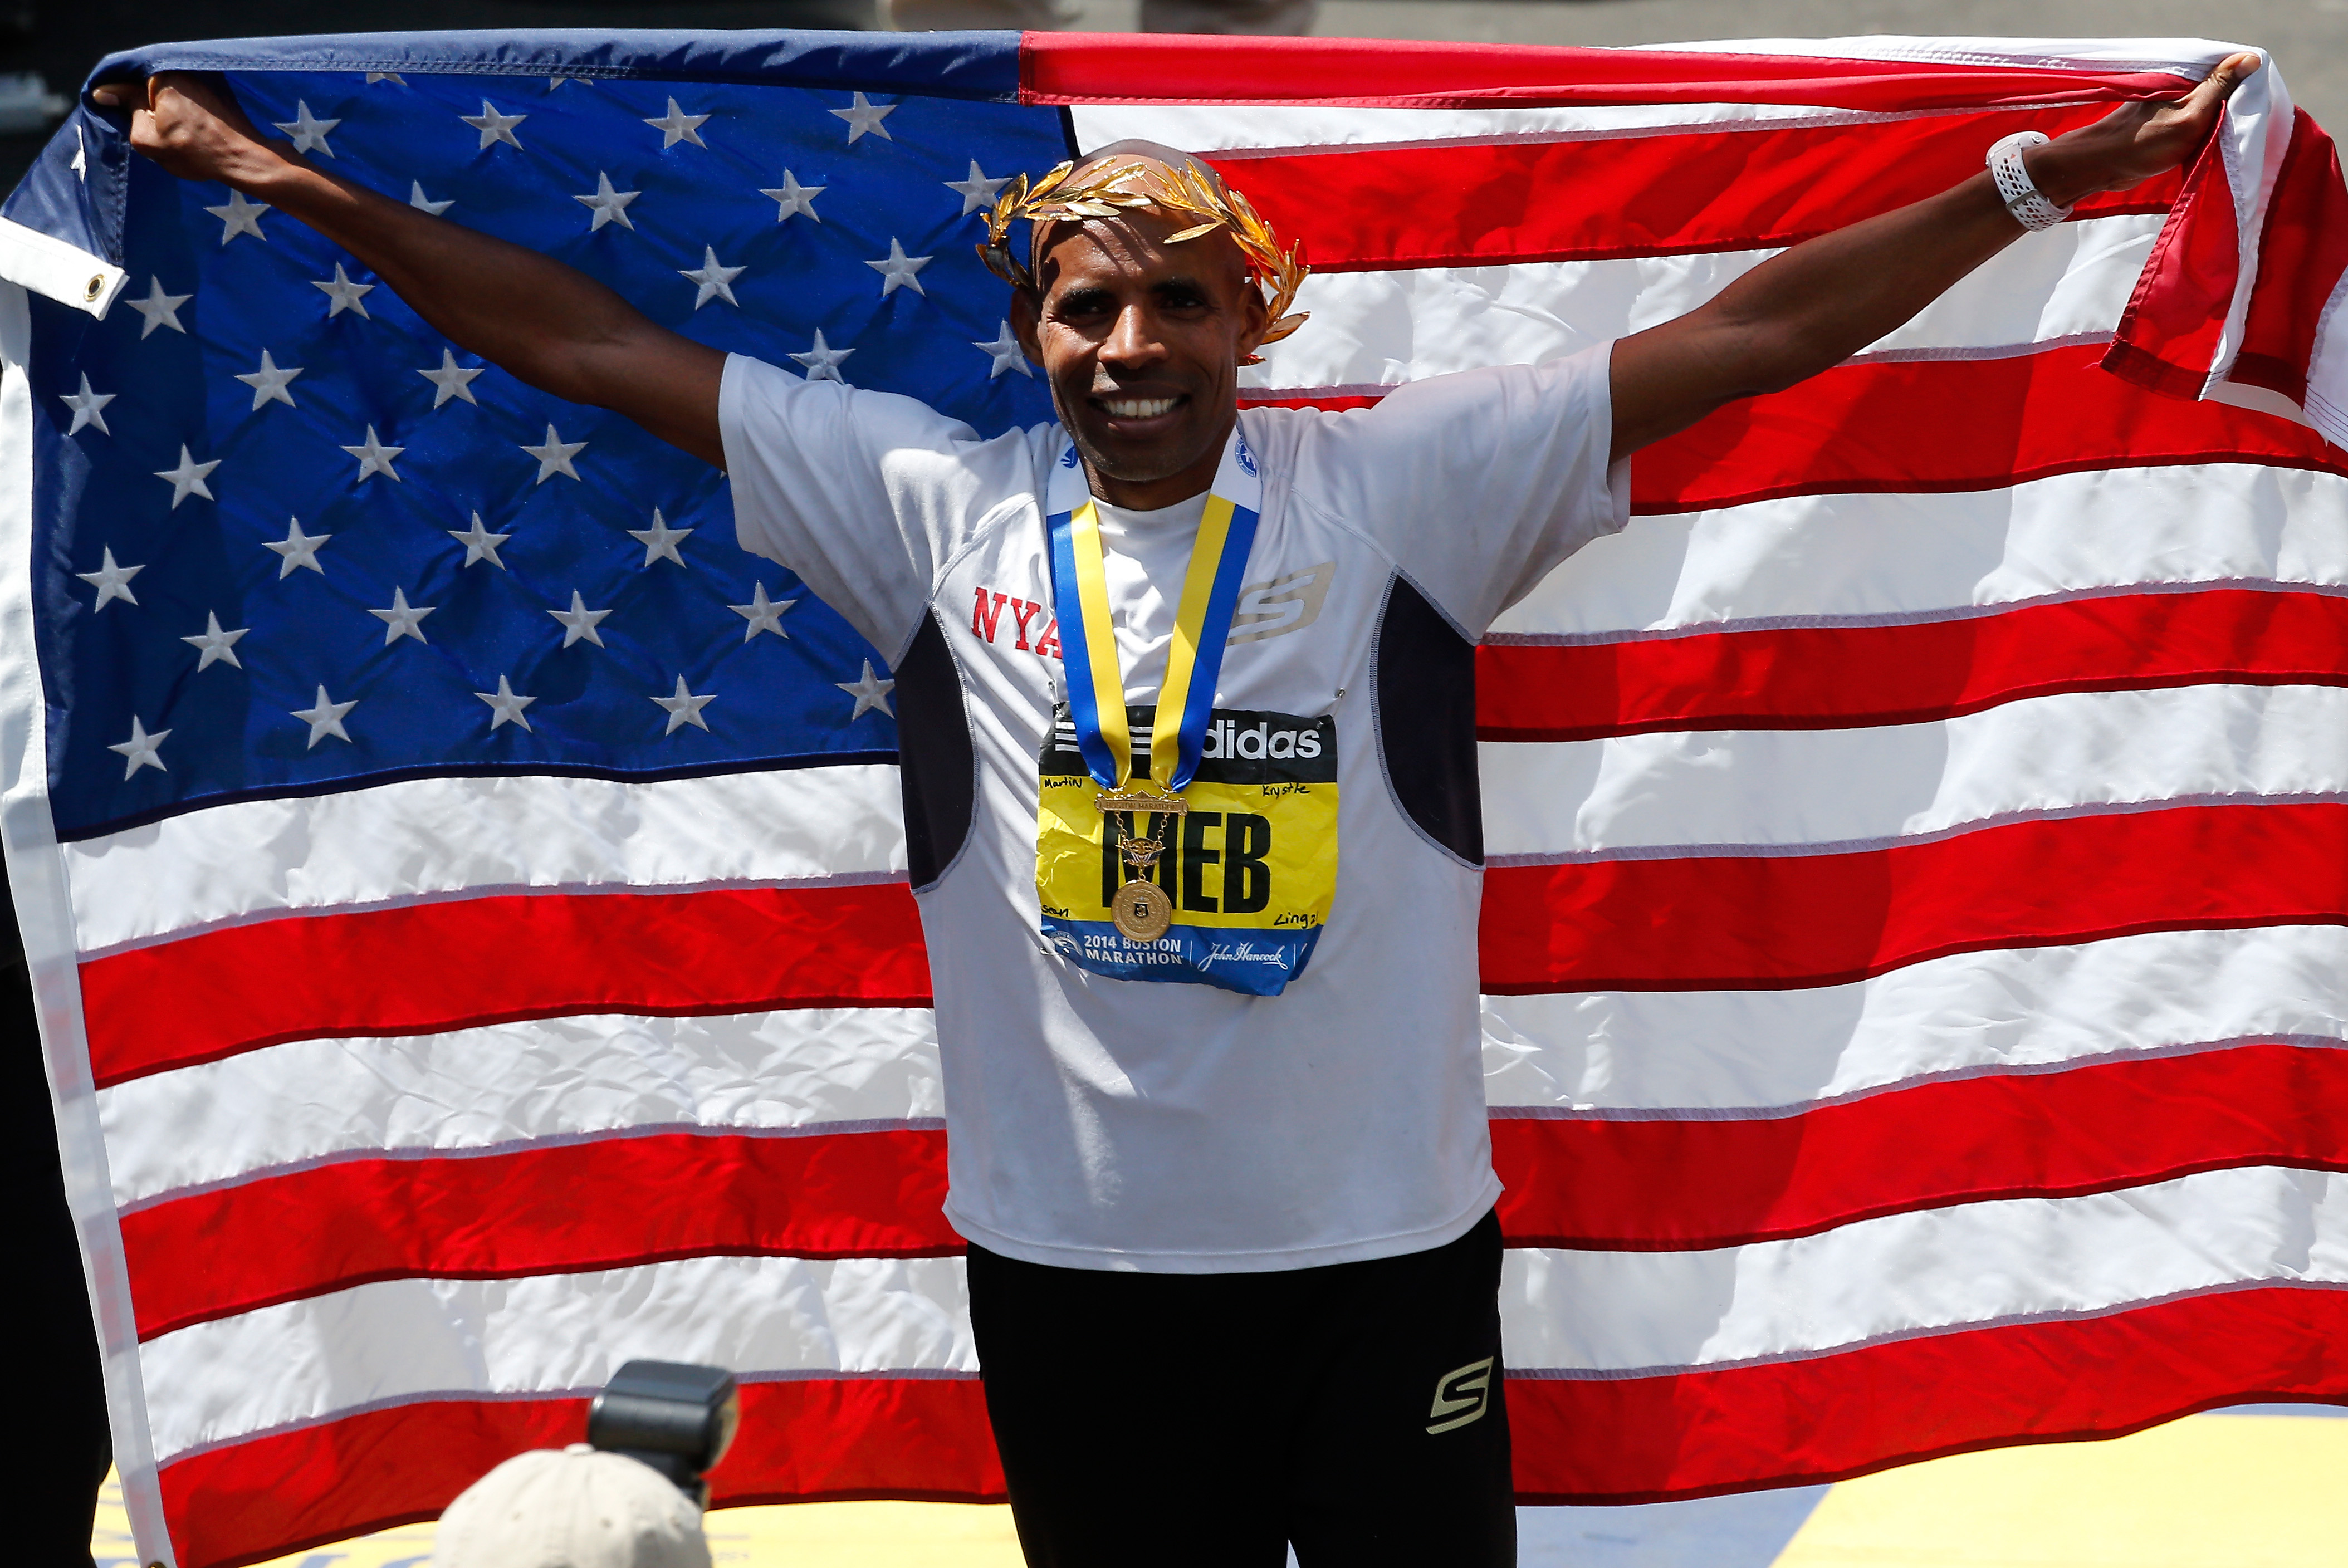 Meb Keflezighi is the top American male in Sunday's race. (Getty)